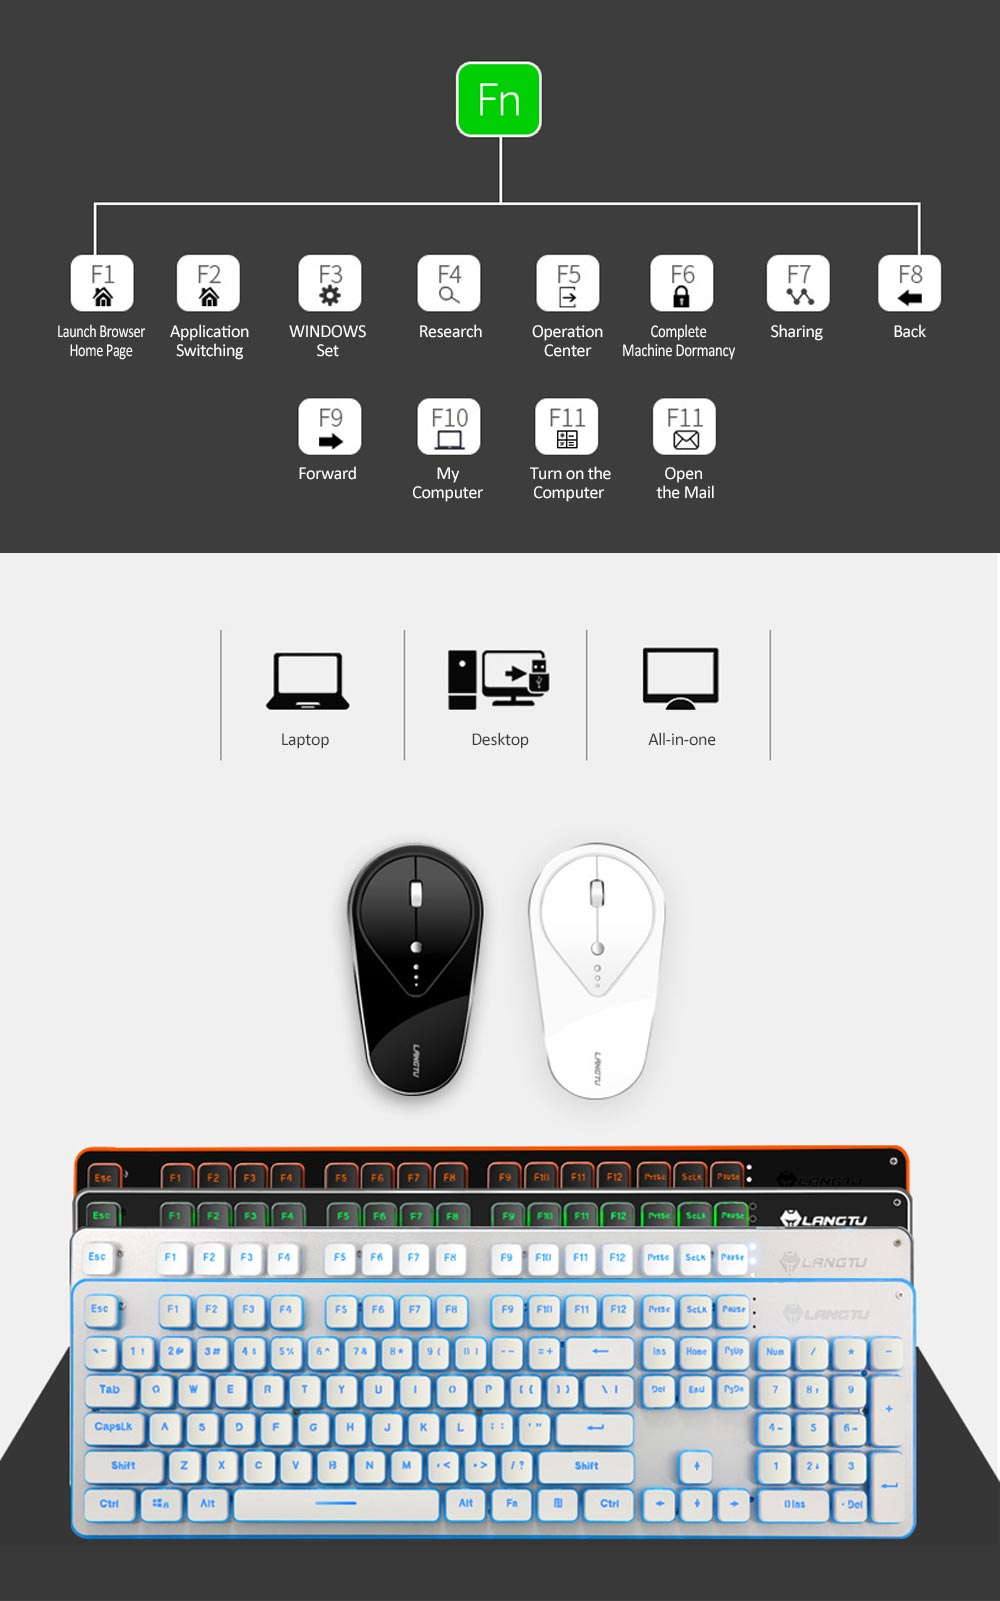 LT600 Gaming Keyboard & Mouse Set, Charging LED Mute Wireless Waterproof Keyboard Mouse Set for Laptop & Desktop & MAC & WIND OWS 14